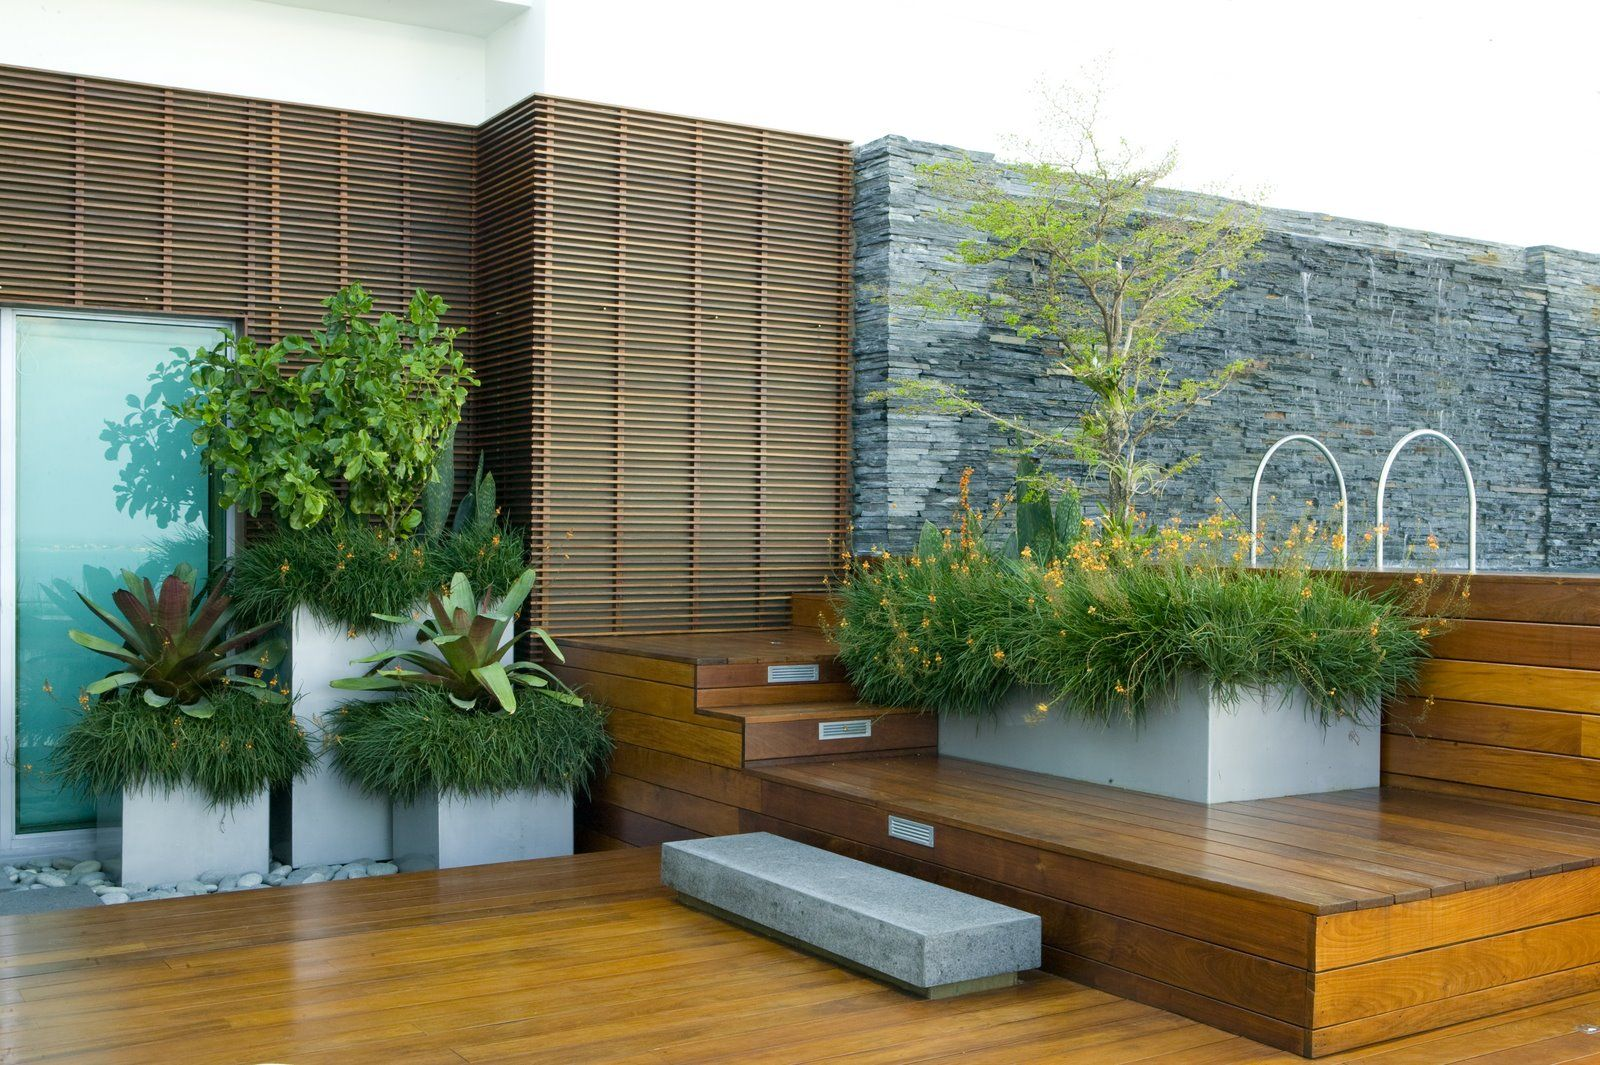 Modern Designs Rooftop Garden With Good Landscaping Ideas And Decks